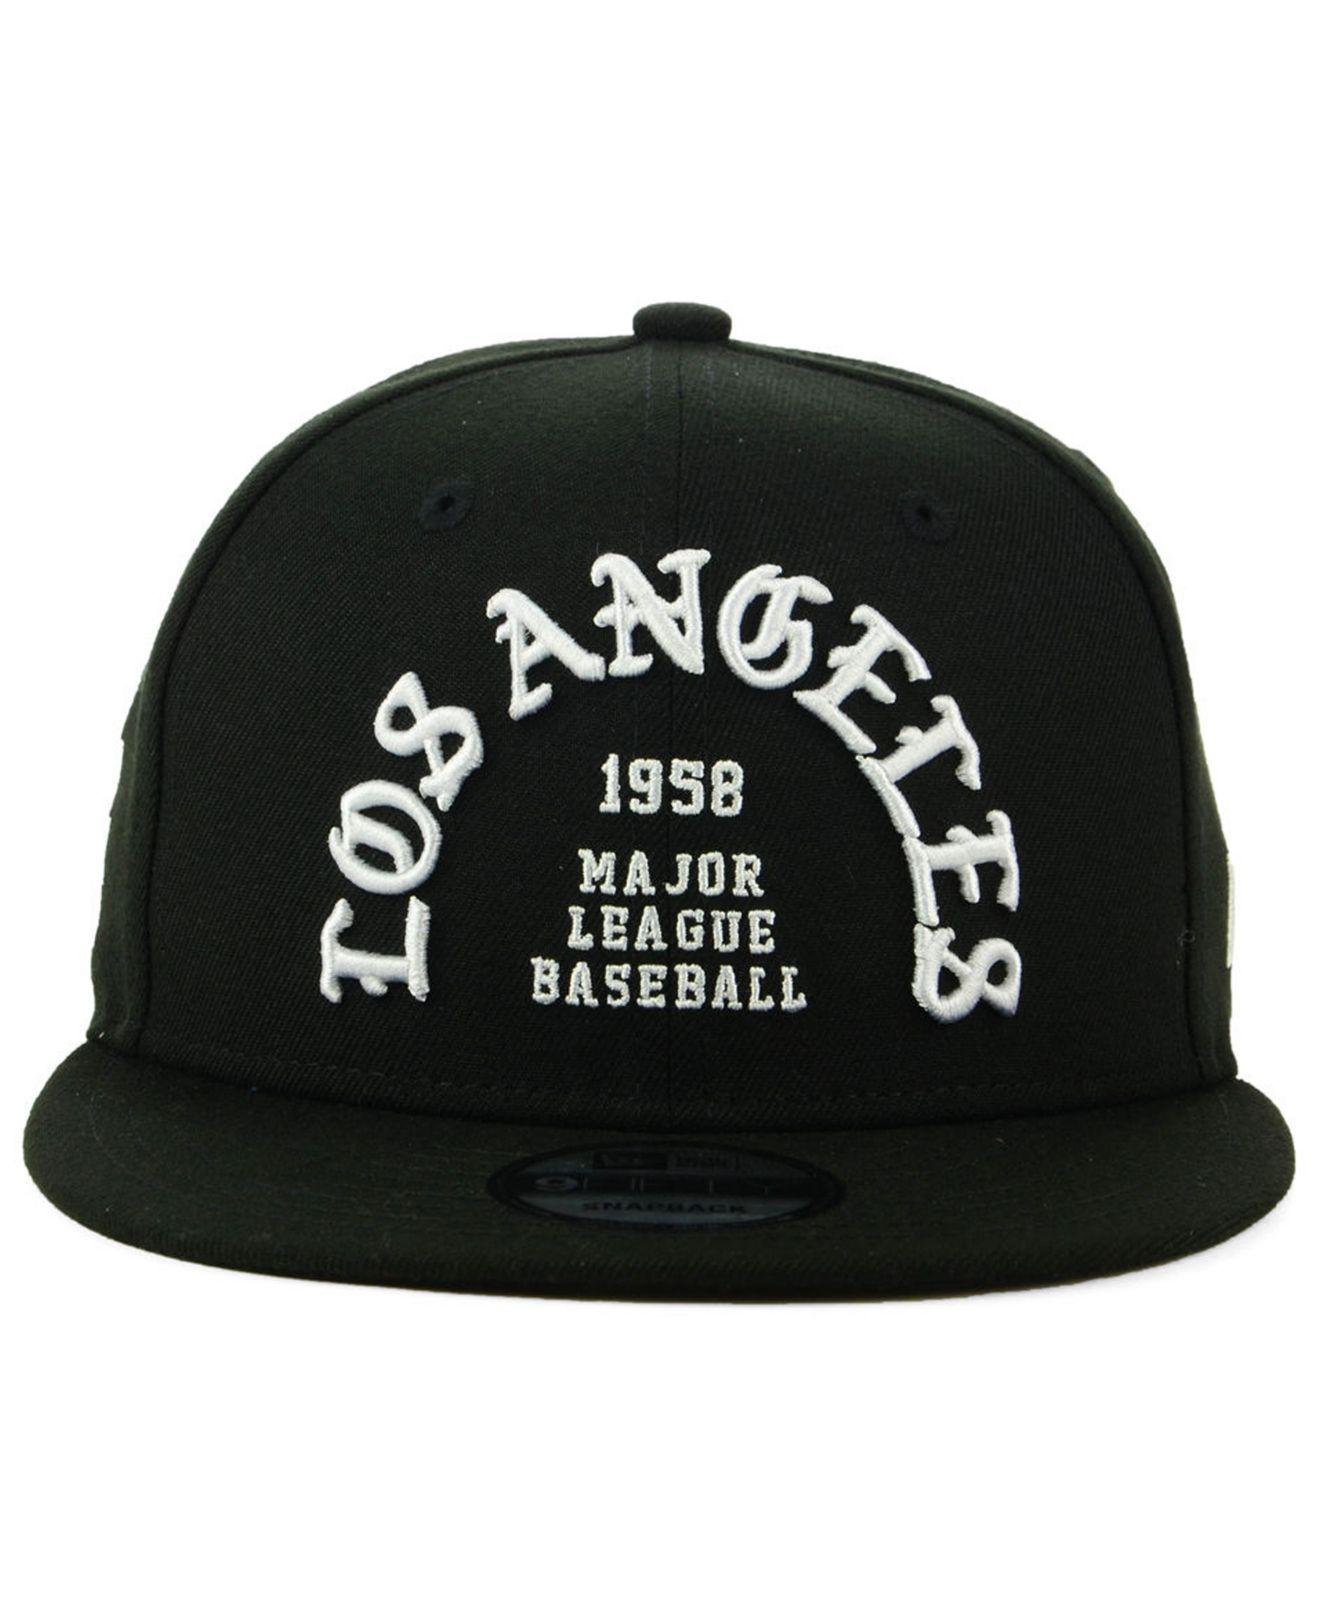 best service a1de2 6eca6 coupon code for los angeles dodgers new era mlb x levi hat cap eaab4 e07be   reduced gallery. previously sold at macys mens team hats mens new era e0d4c  ...